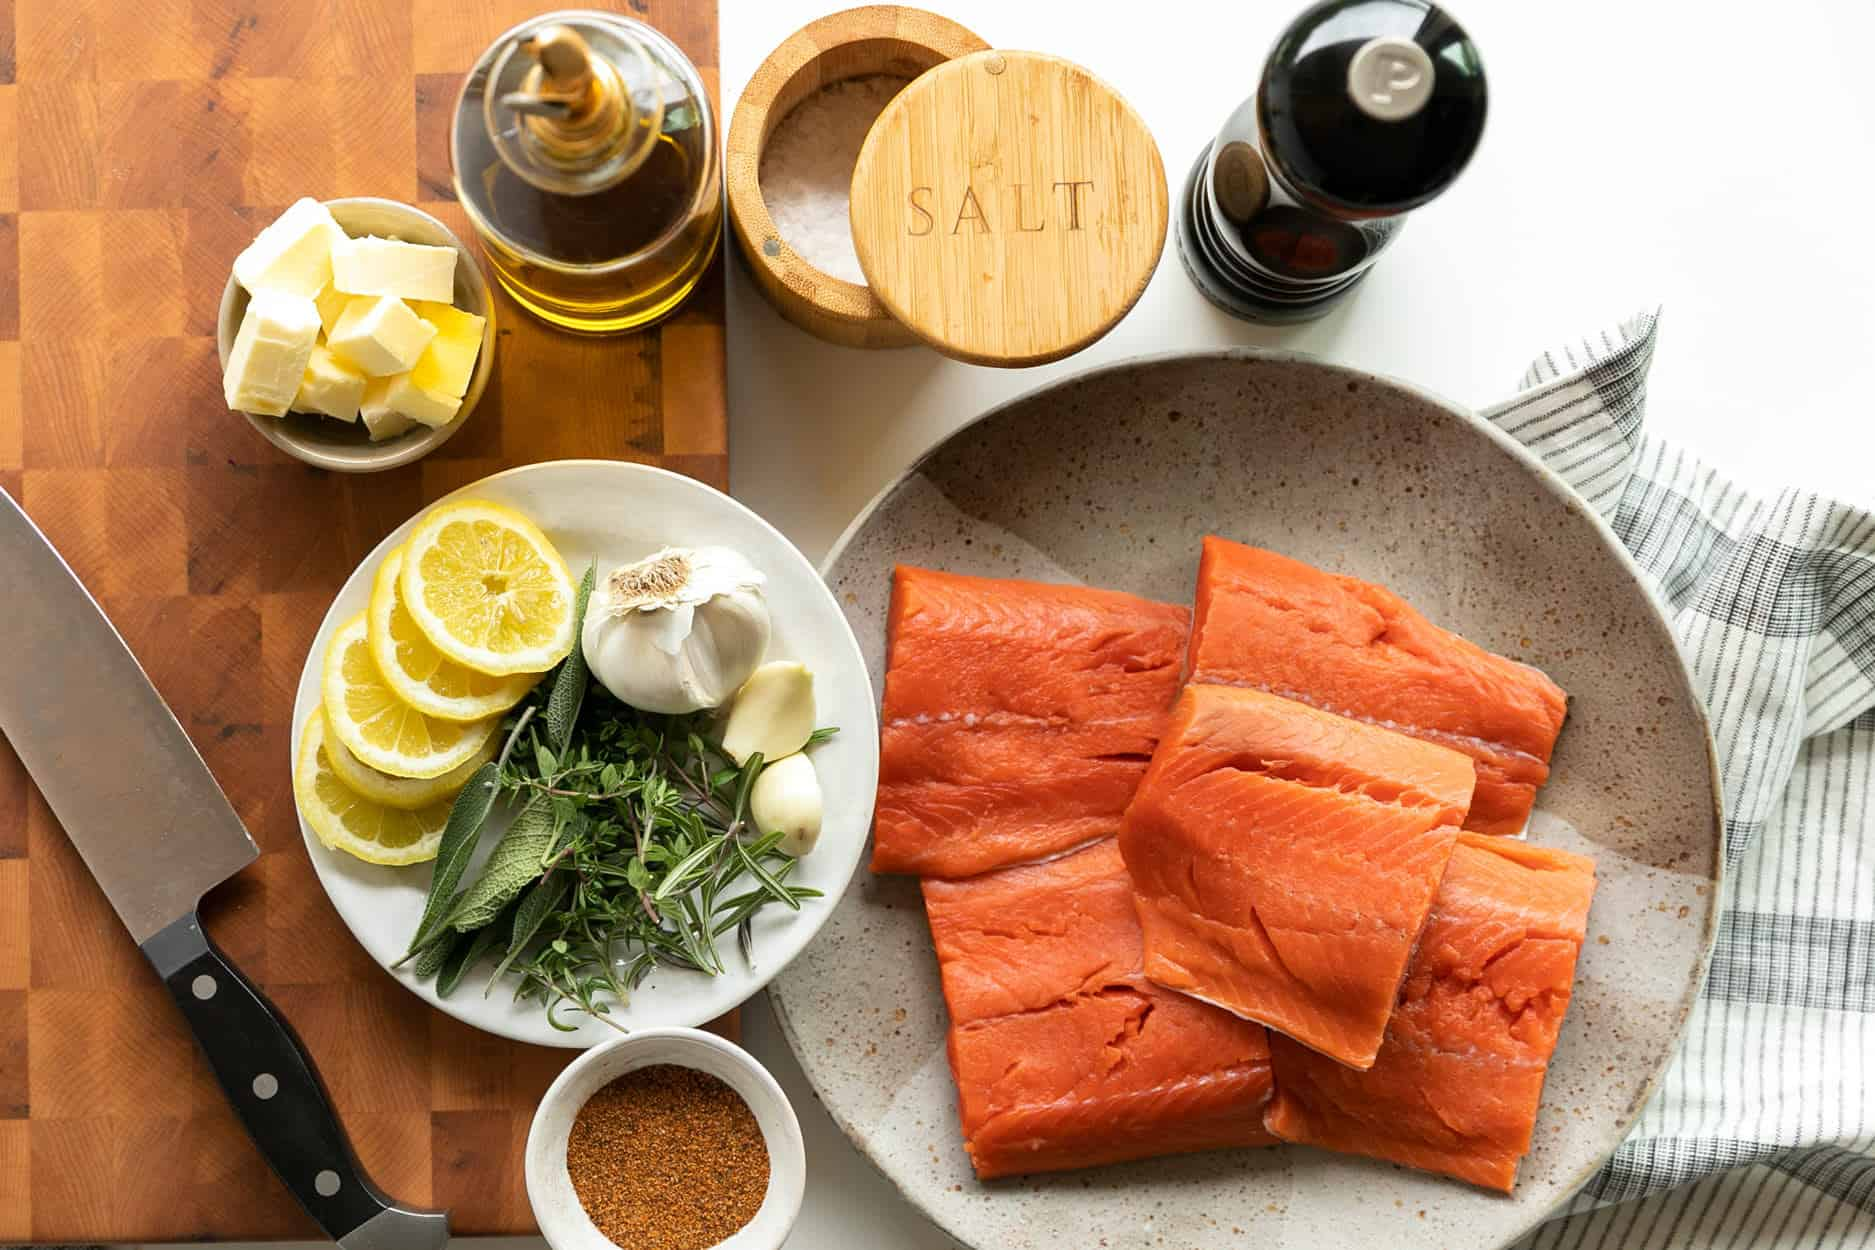 Ingredients to prepare Brown Butter Herb Crispy Skin Salmon and Vegetables. Cubed butter, sea salt flakes, olive oil, fresh ground pepper, lemon slices, garlic, rosemary, thyme, sage, Cajun seasoning and wild caught salmon.